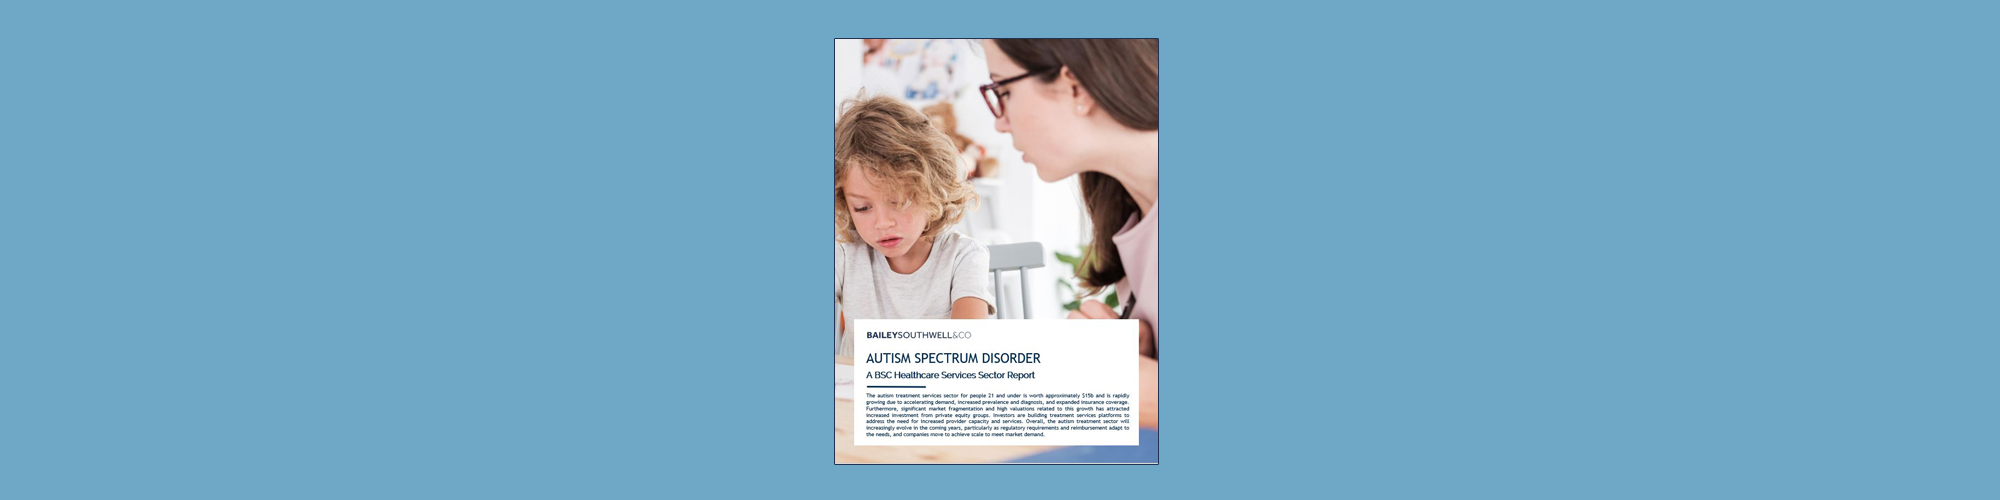 Autism Spectrum Disorder: A BSC Healthcare Services Sector Report